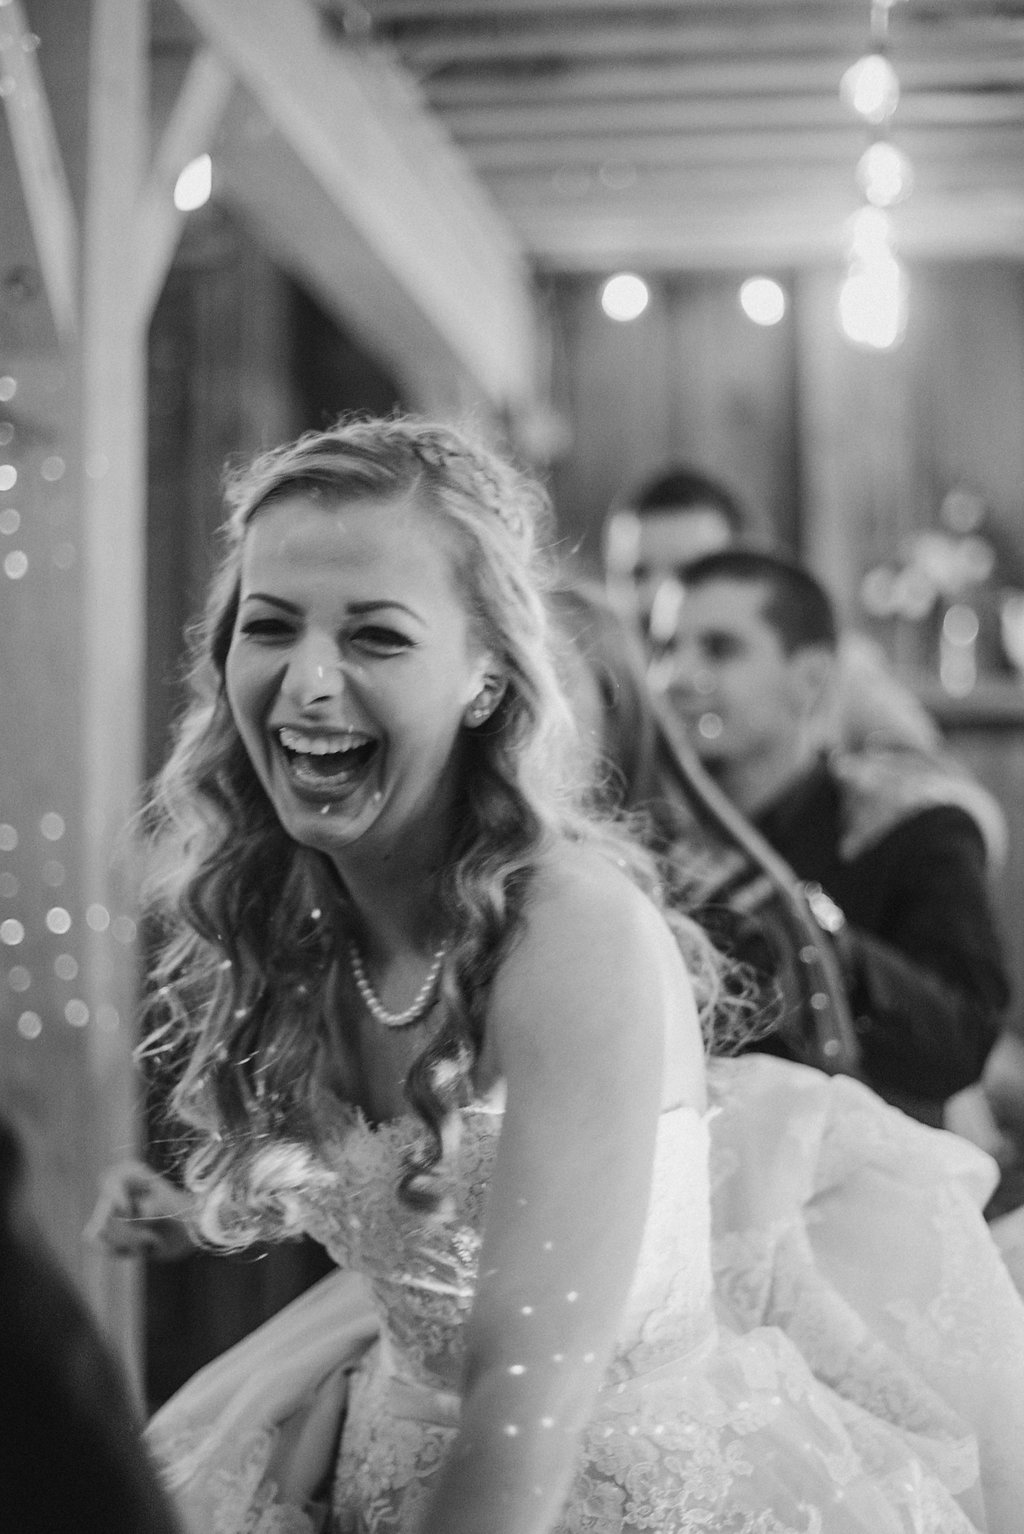 Bride laughing at wedding in black and white